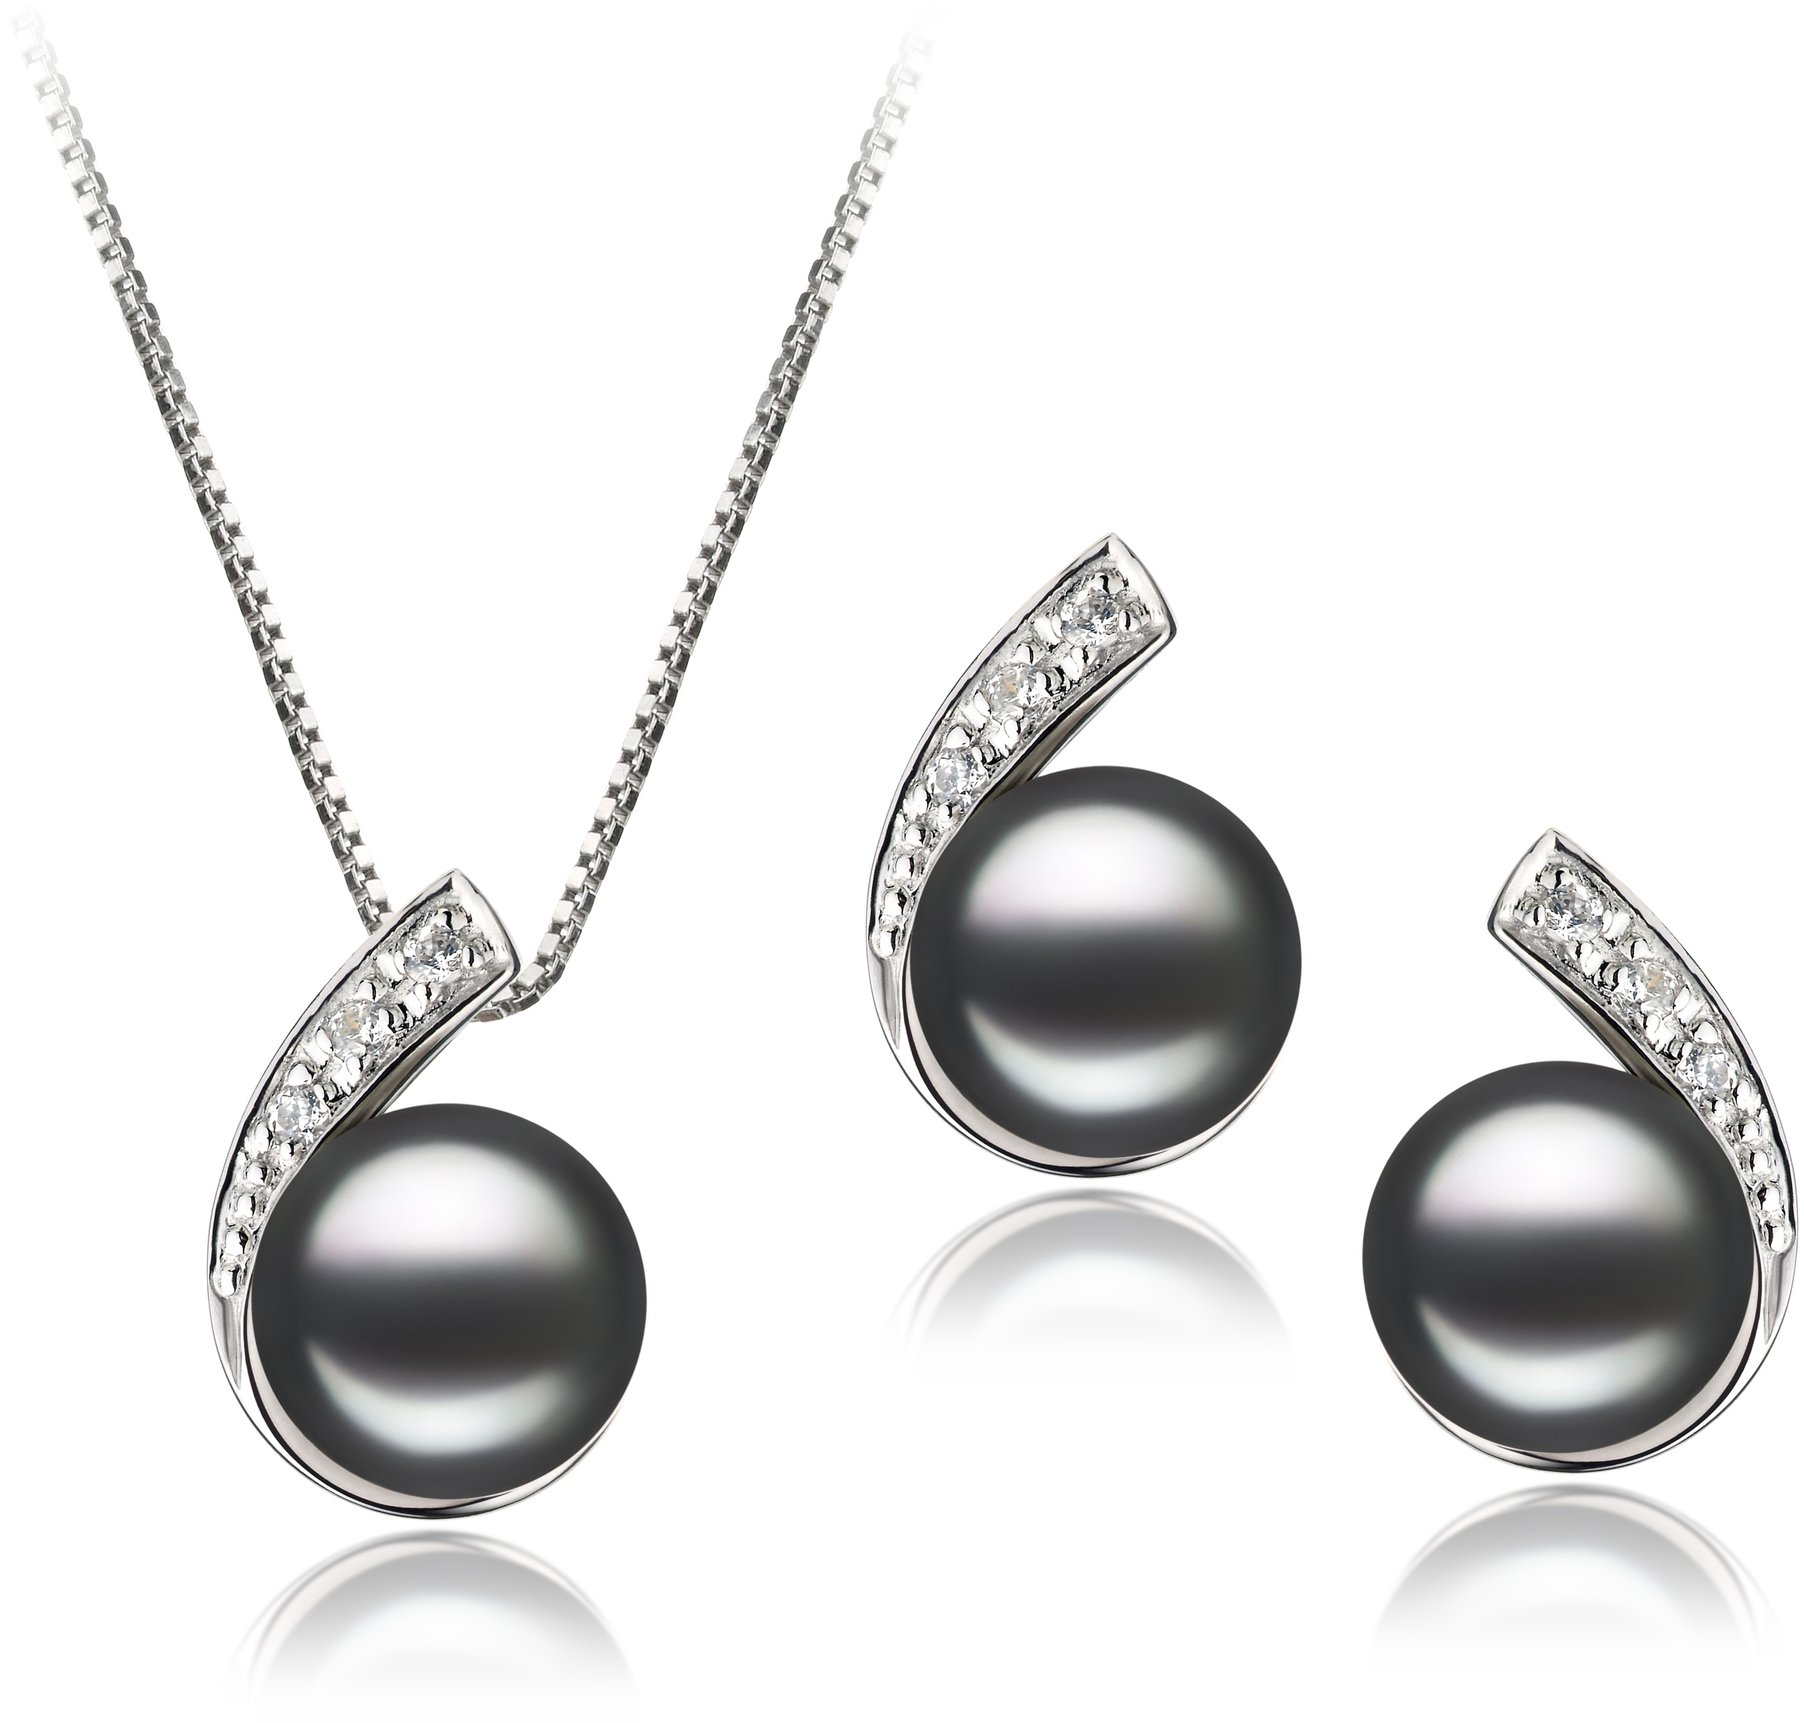 PearlsOnly - Claudia Black 7-8mm AA Quality Freshwater 925 Sterling Silver Cultured Pearl Set